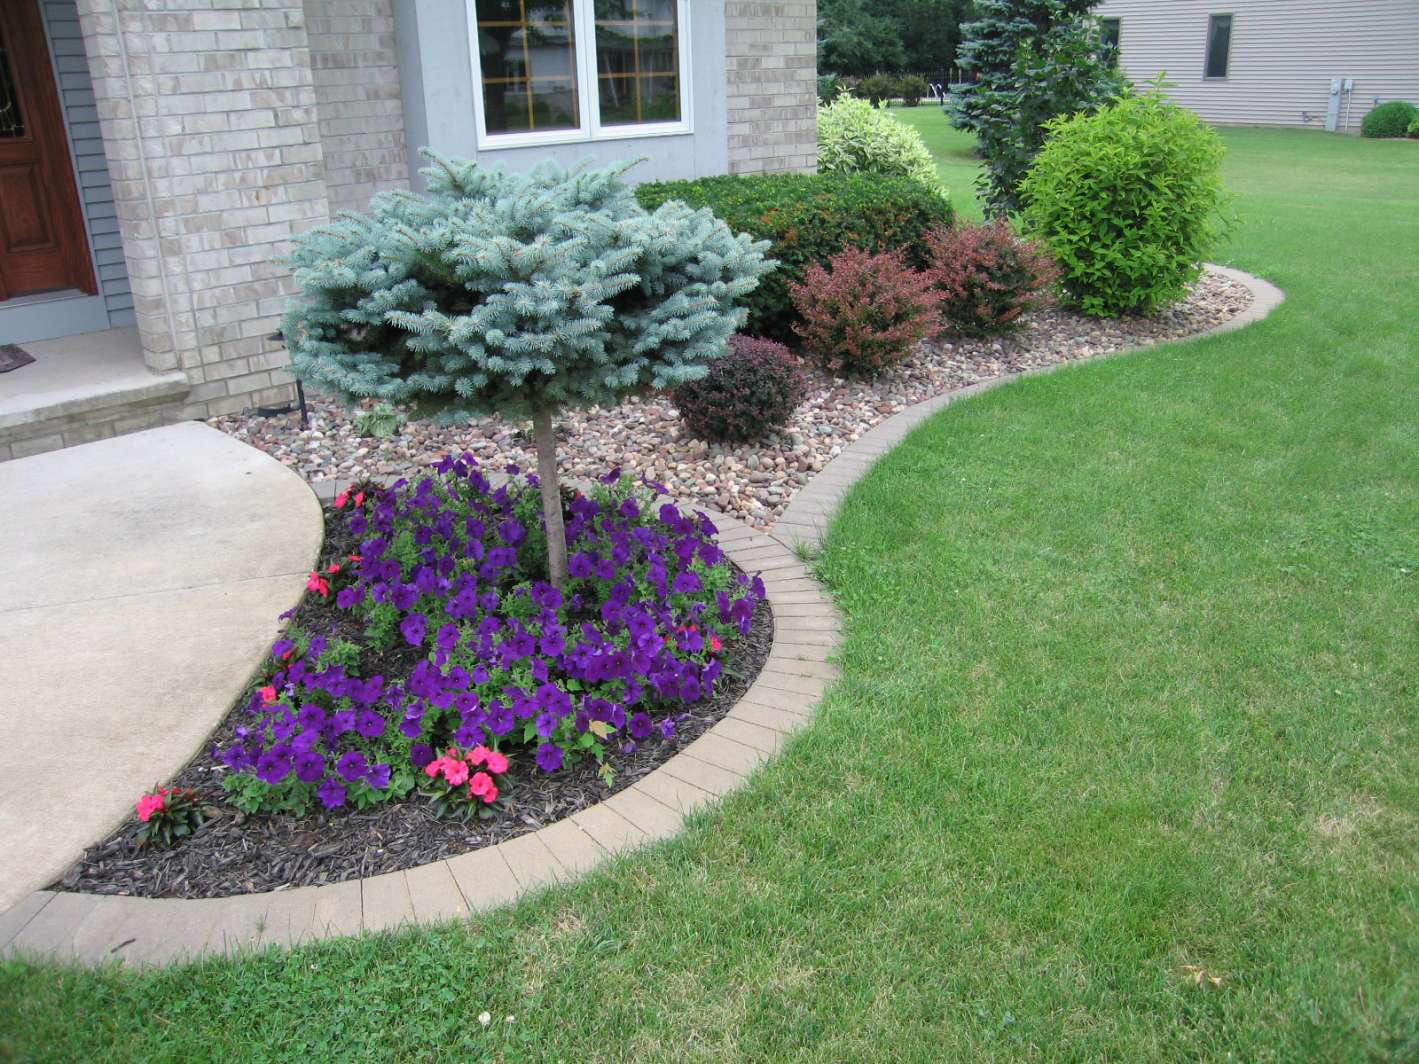 Shrubs And Bushes For Sale In Appleton WI